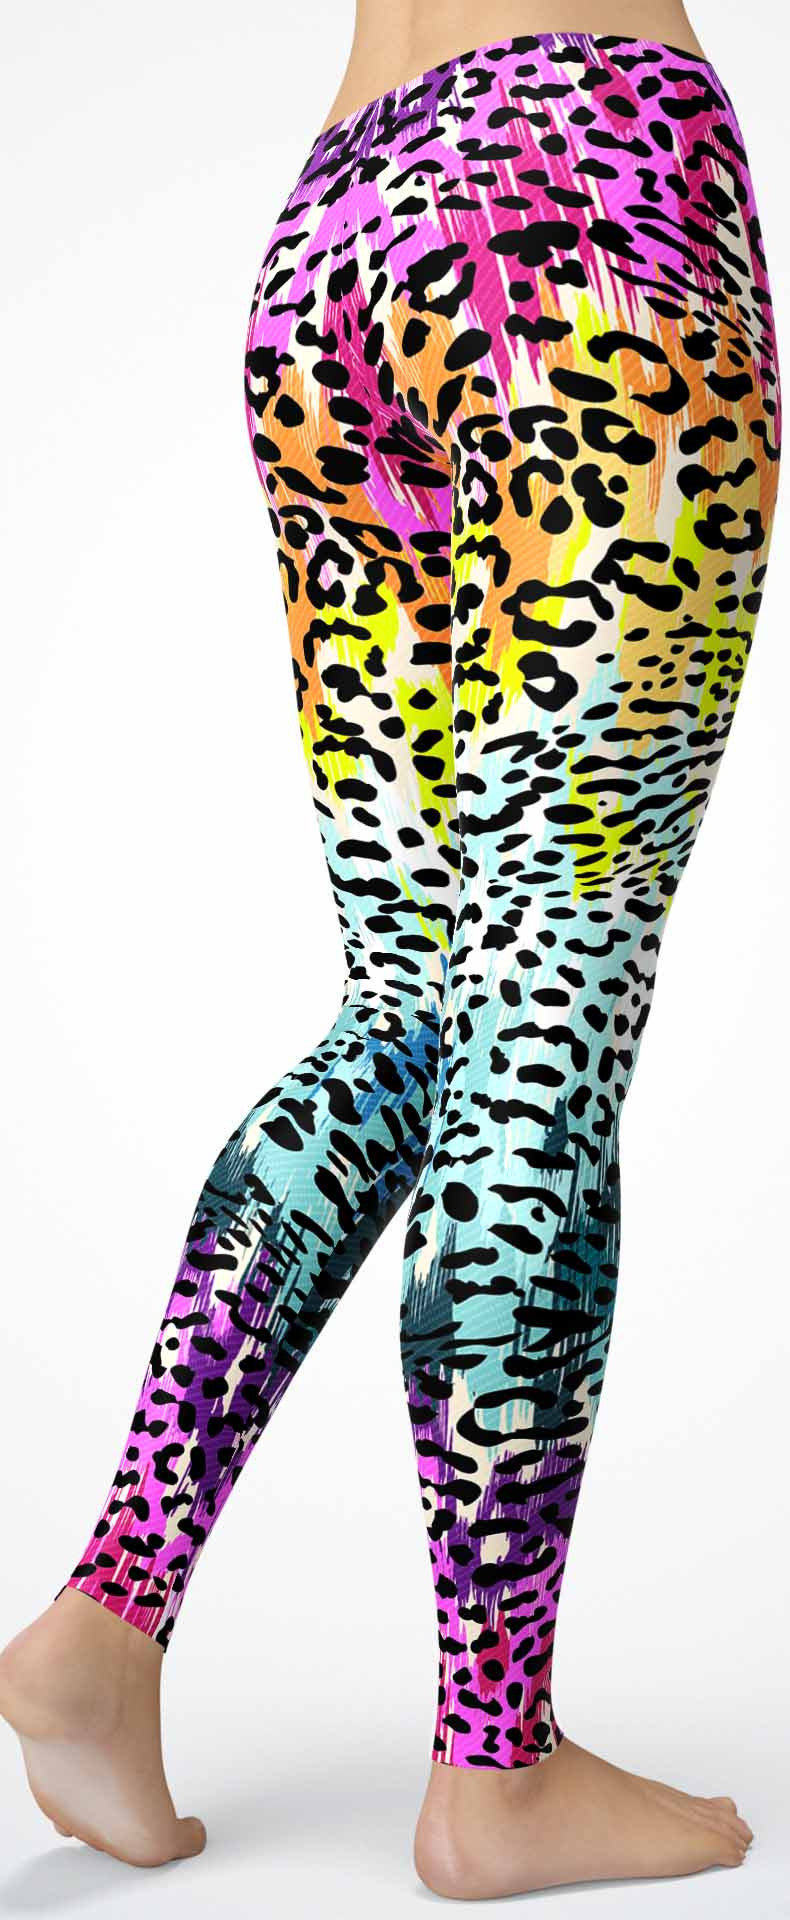 Rainbow Leopard Skin Leggings